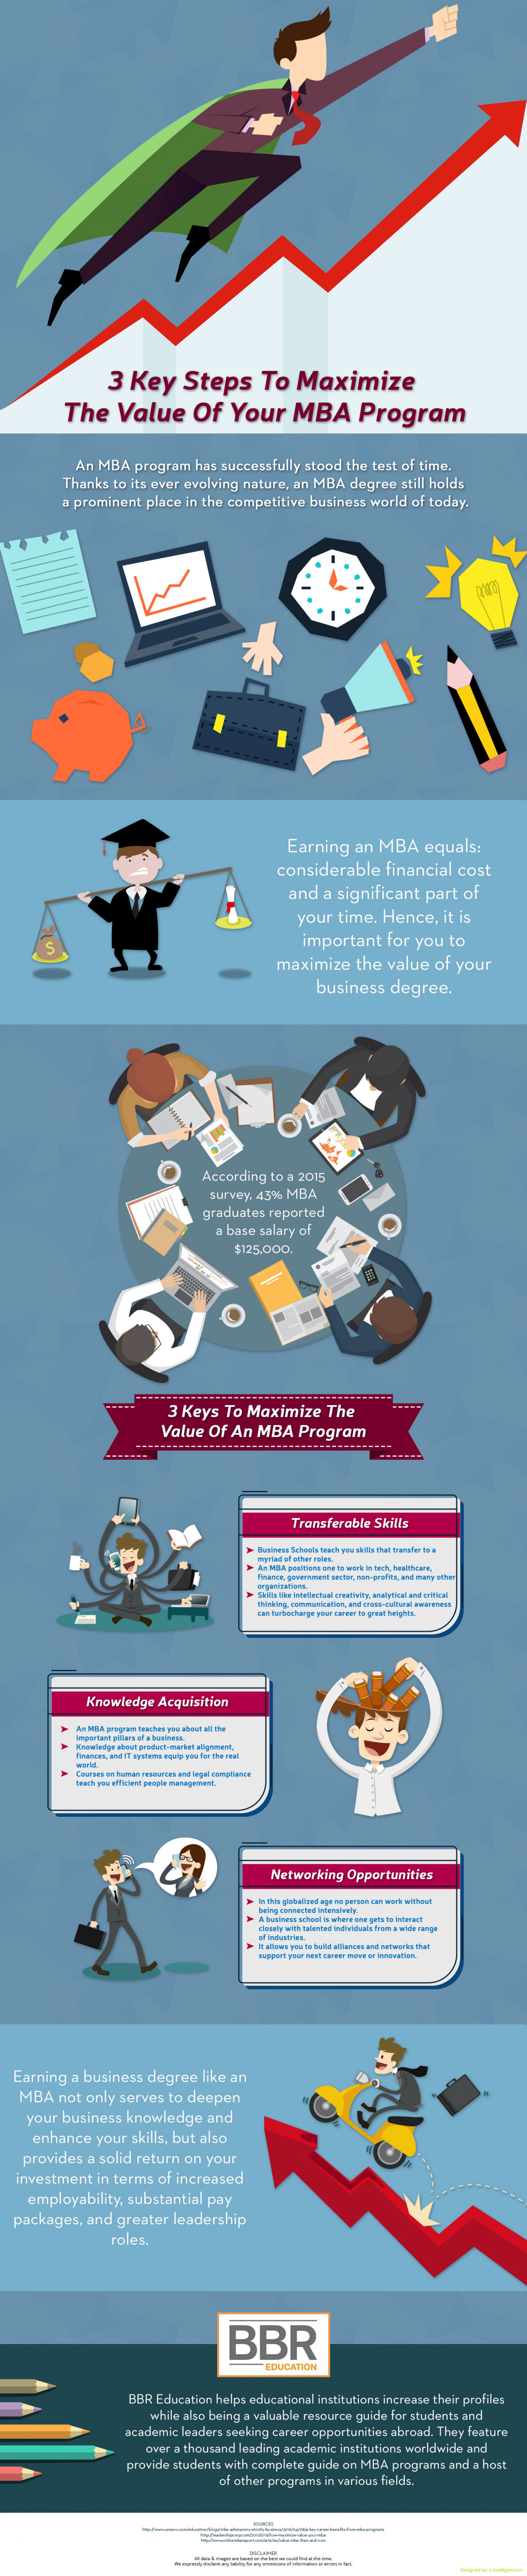 3 Key Steps To Maximize The Value Of Your MBA Program Infographic